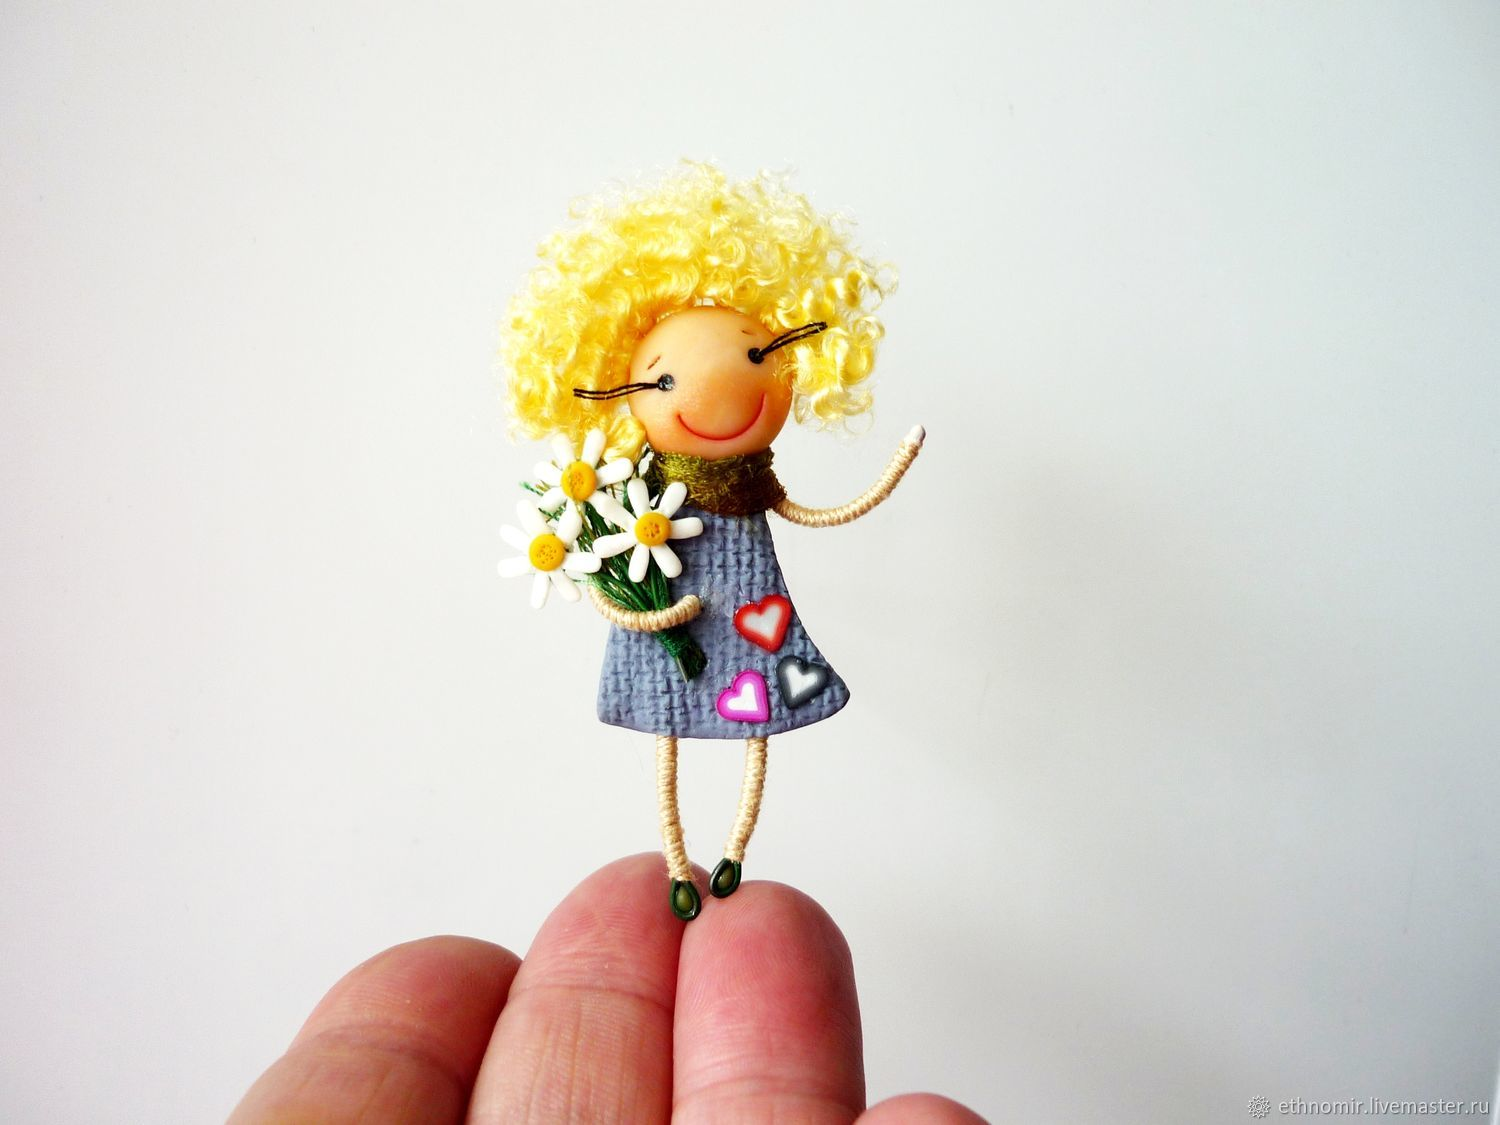 Brooch girl ' I Wish you peace and good!', Brooches, Irbit,  Фото №1